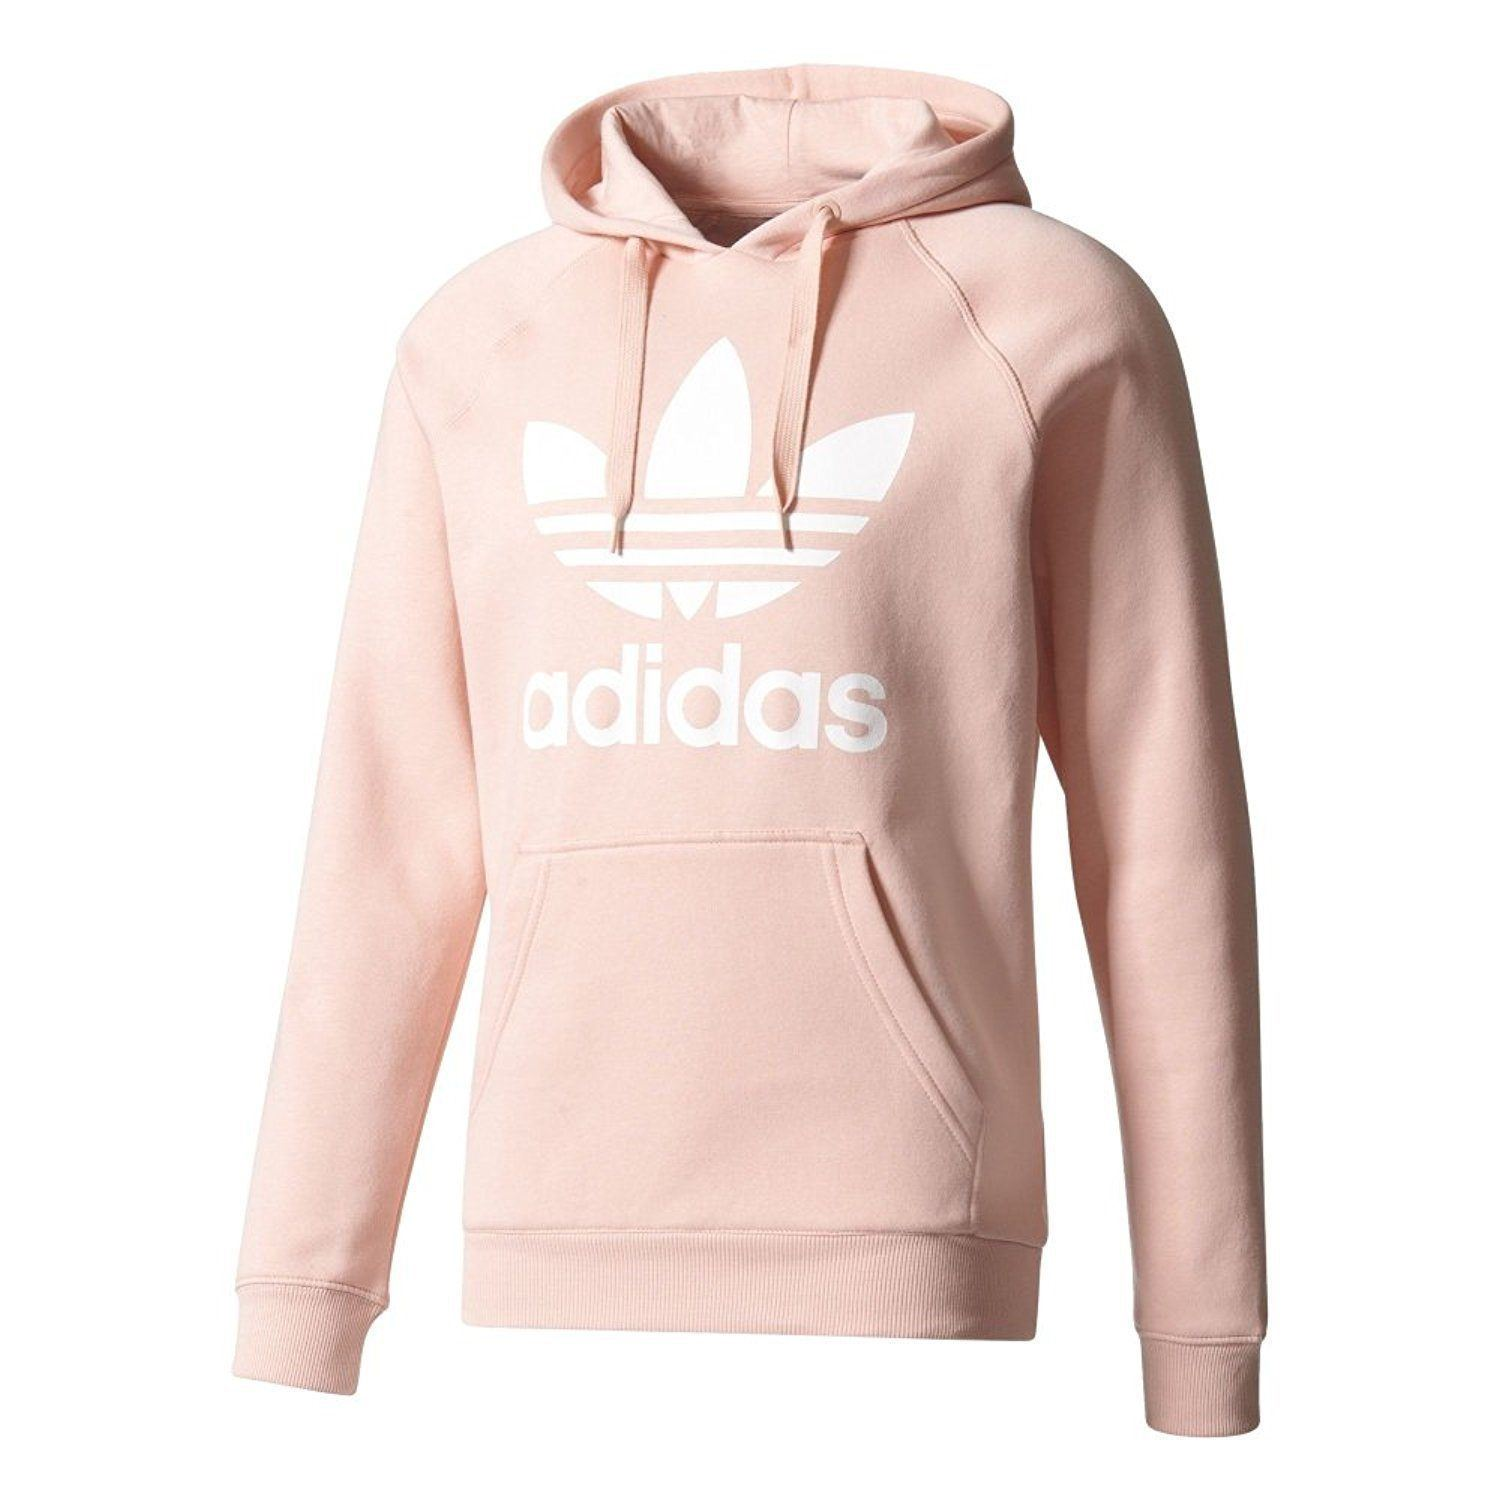 low price new specials reputable site Details about adidas ORIGINALS TREFOIL HOODIE PINK MEN'S WARM COMFY HOODED  RETRO PULLOVER NEW